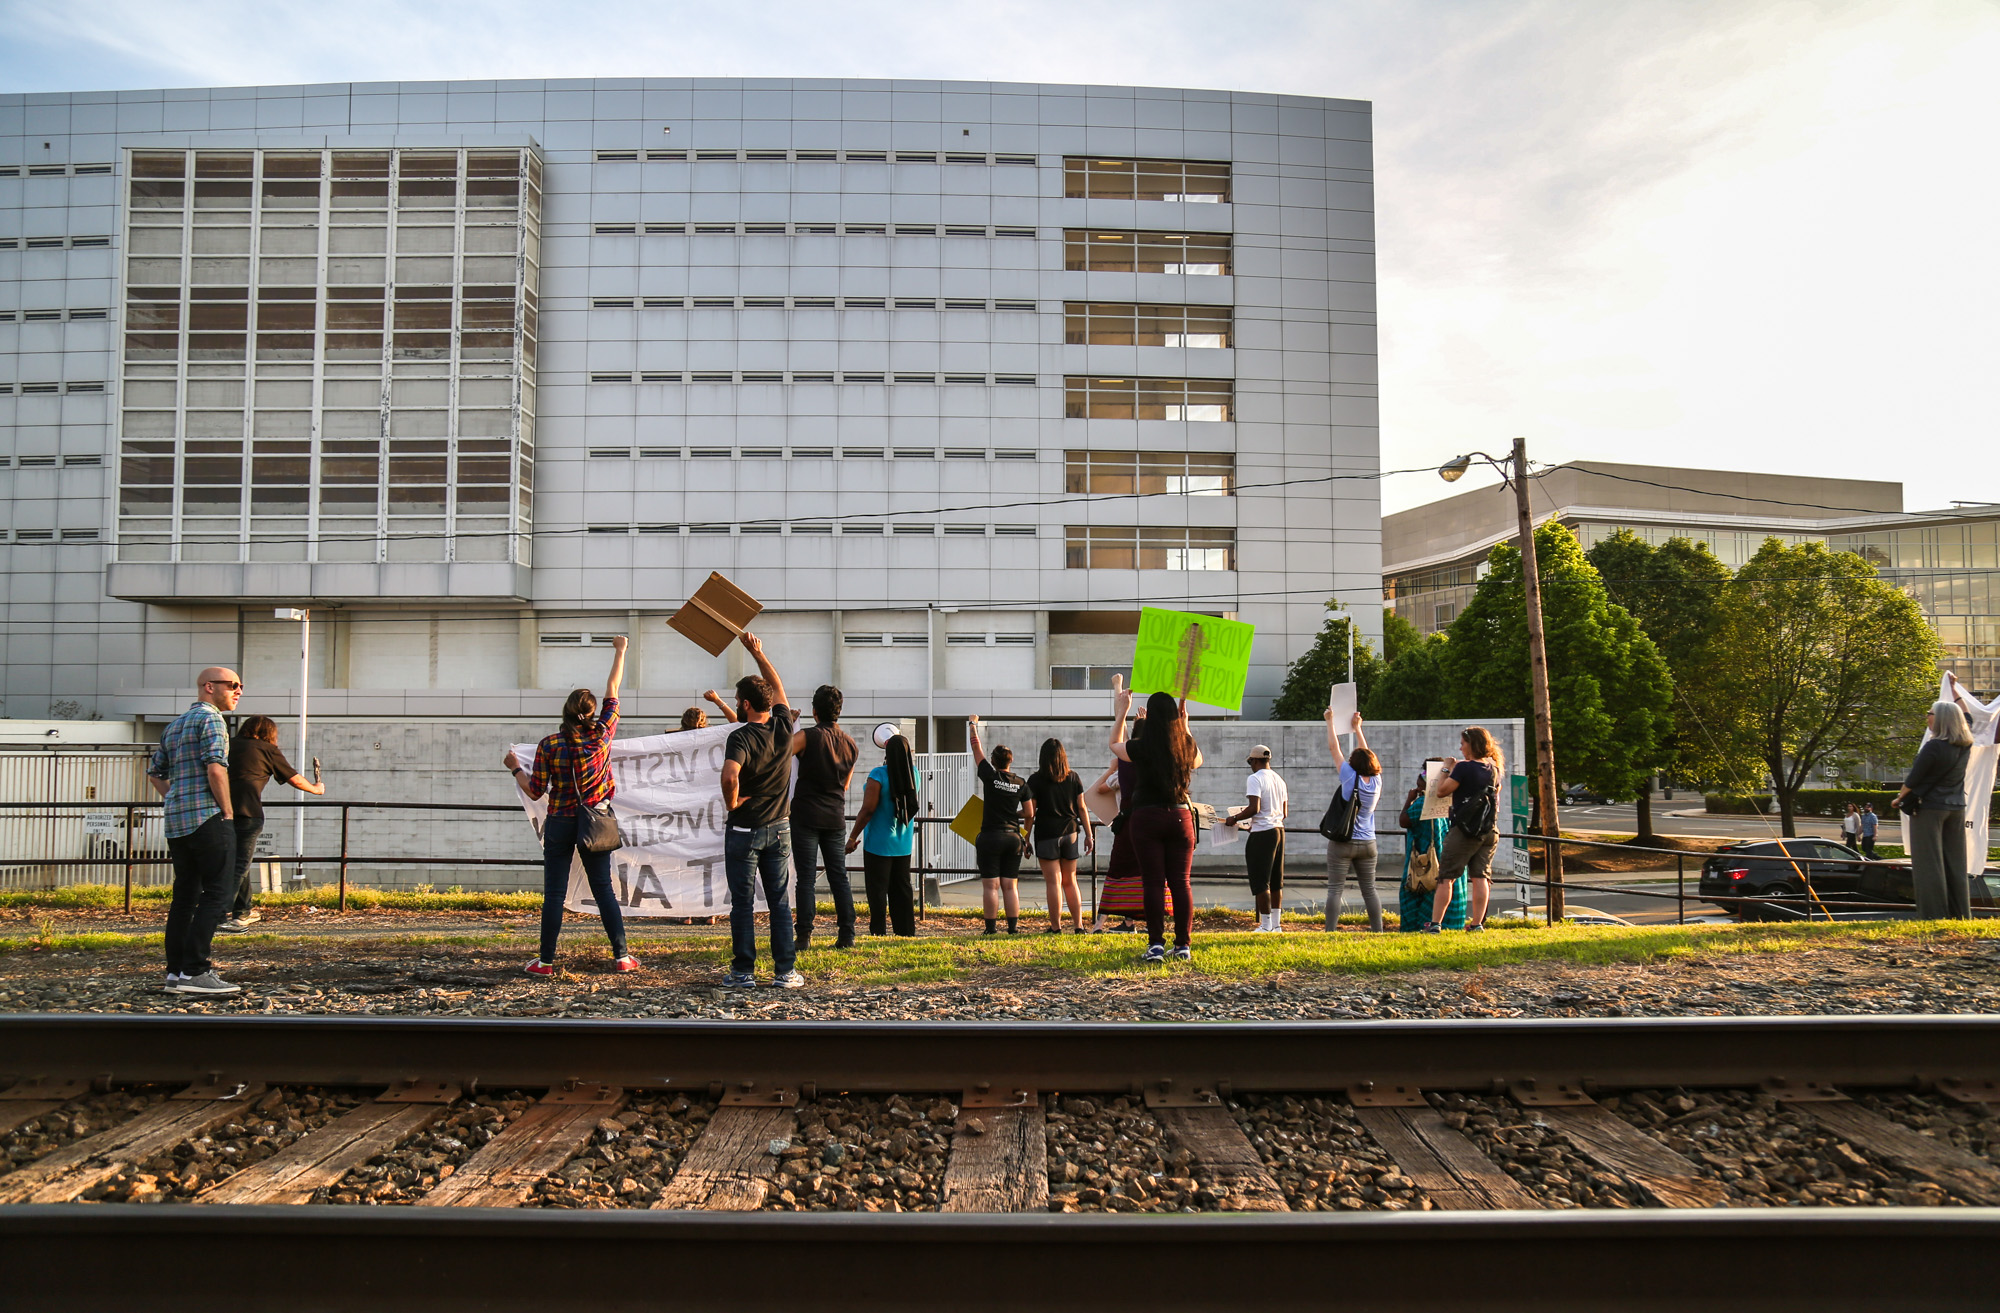 During the protest, people gather in front of the jail, some holding the signs, some writing slogans on the ground with chalks and some holding the speaker. They protest by singing and shouting and sometimes dancing. At the end of the protest, they march down both ends of the street and wave to people up in the bulding.